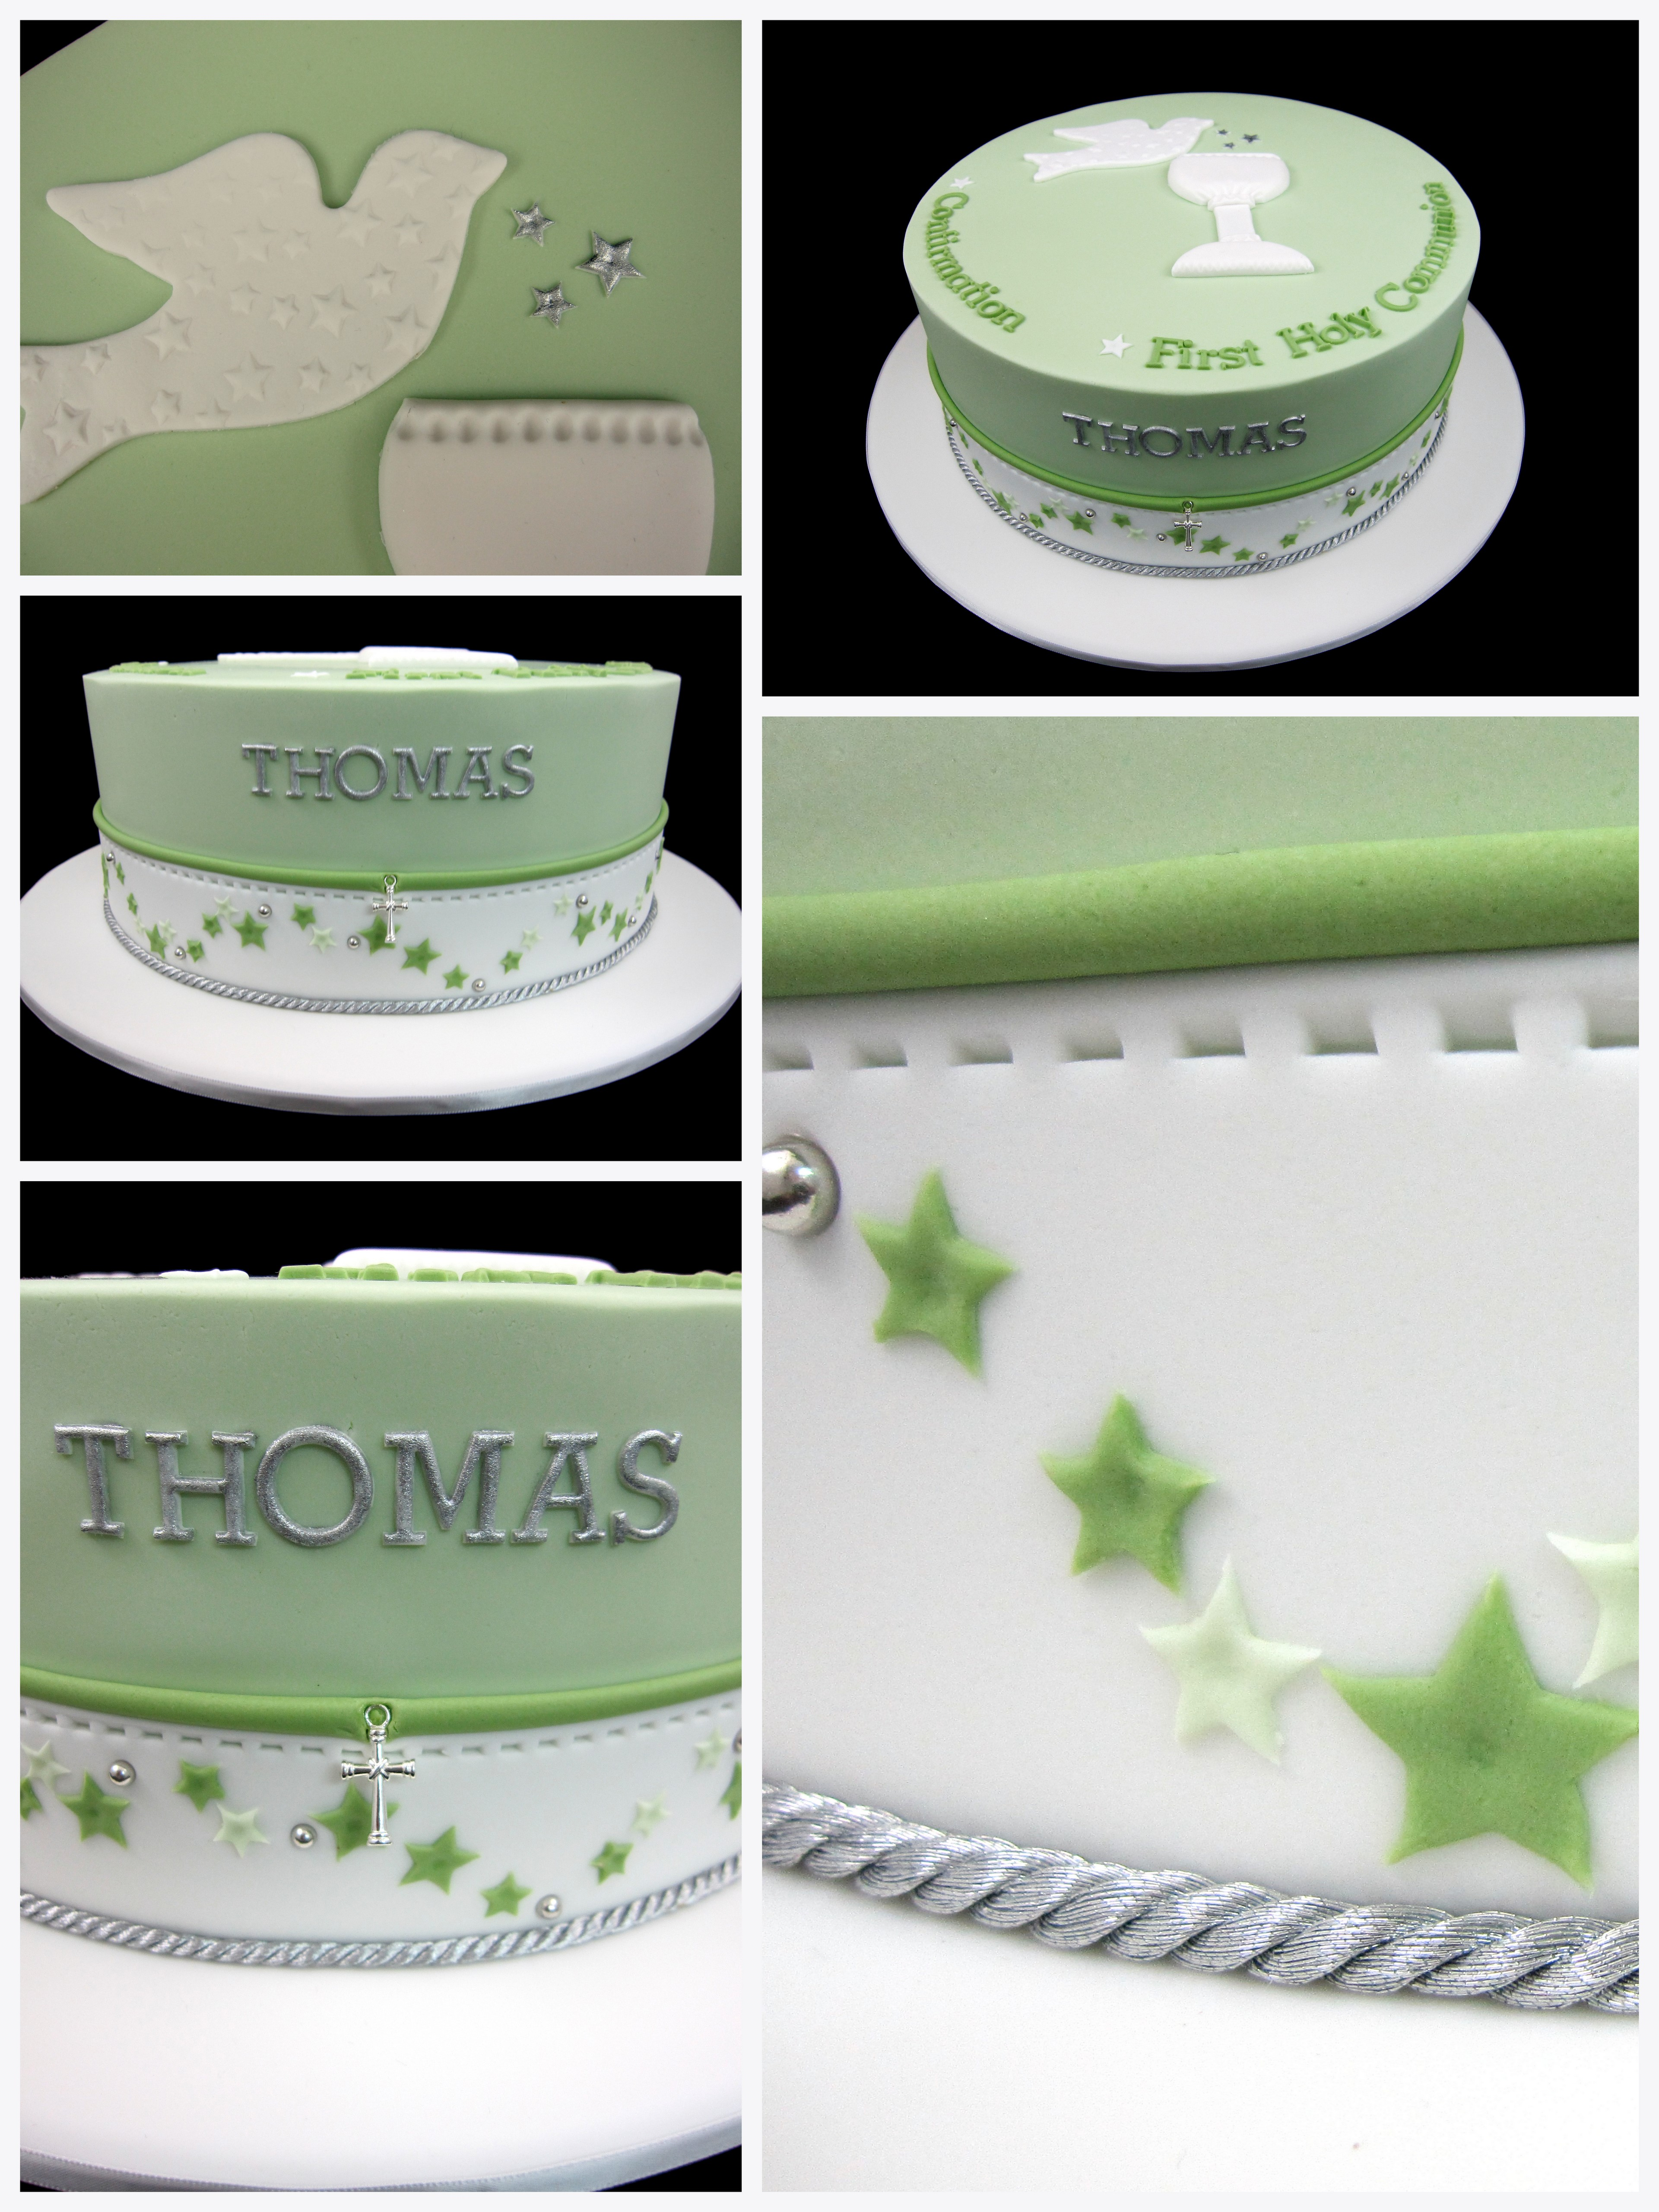 First Holy Communion Cake Inspired By Michelle